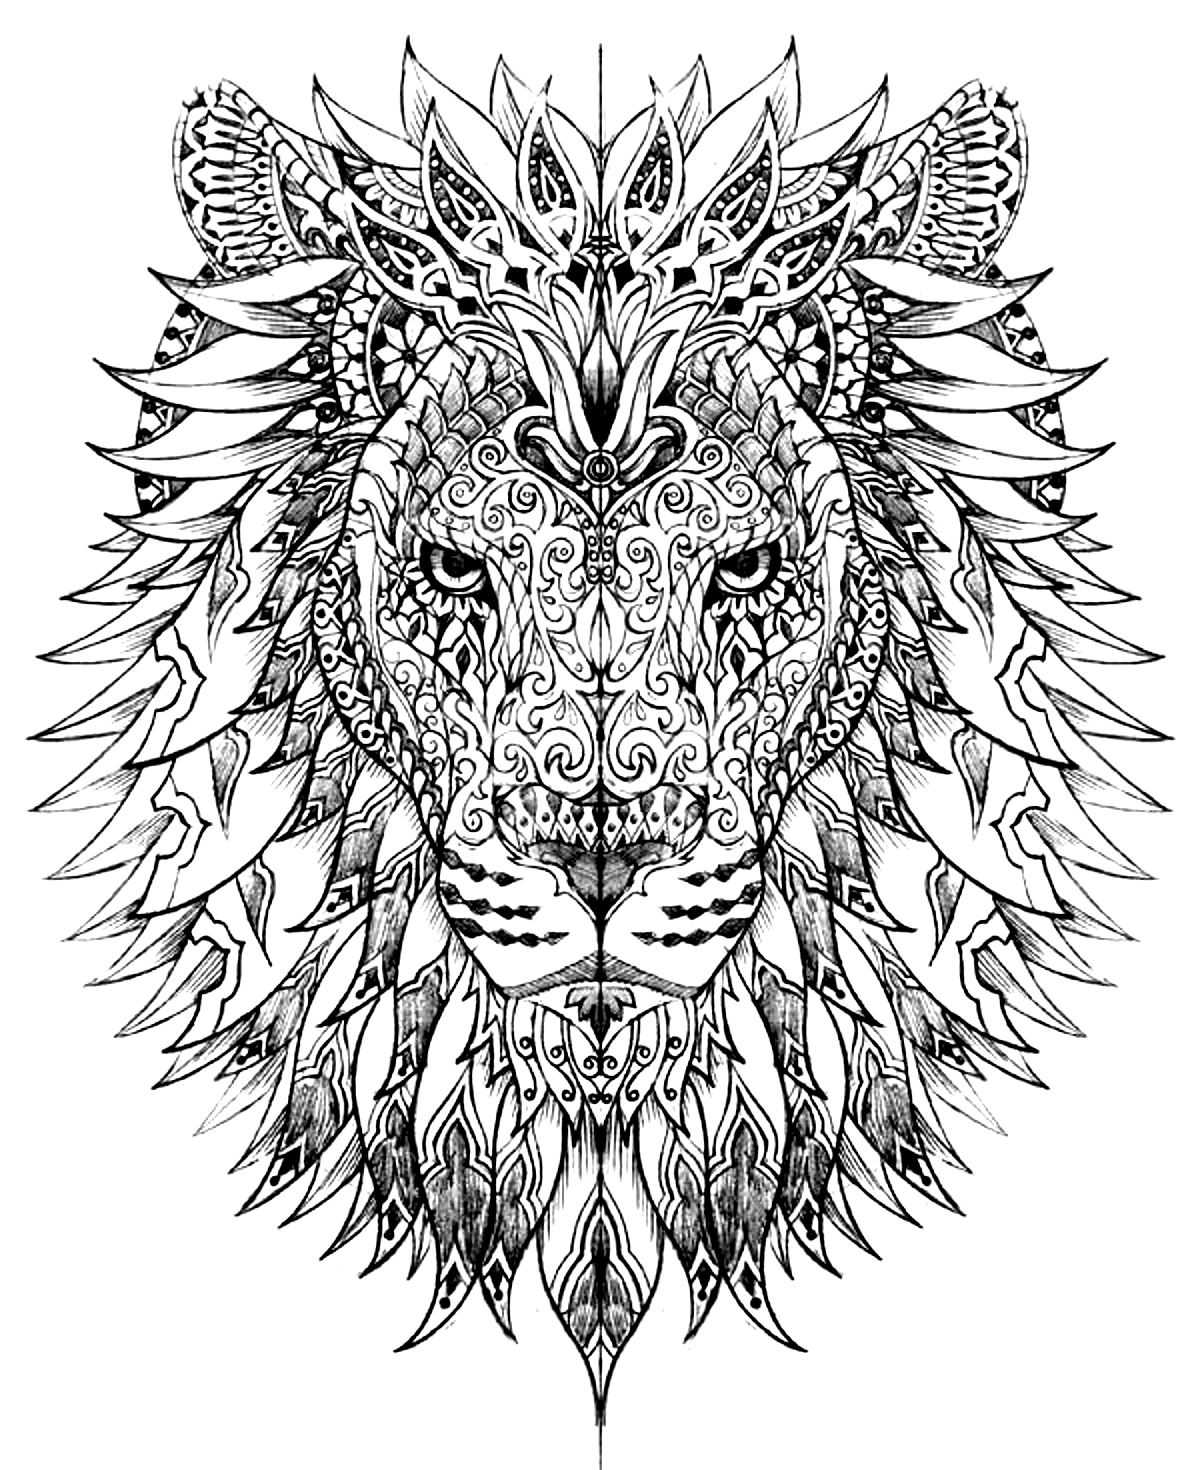 Beautiful Coloring Page : Lion Head. Lion Head Drawn With Very Smart And Harmonious  Patterns